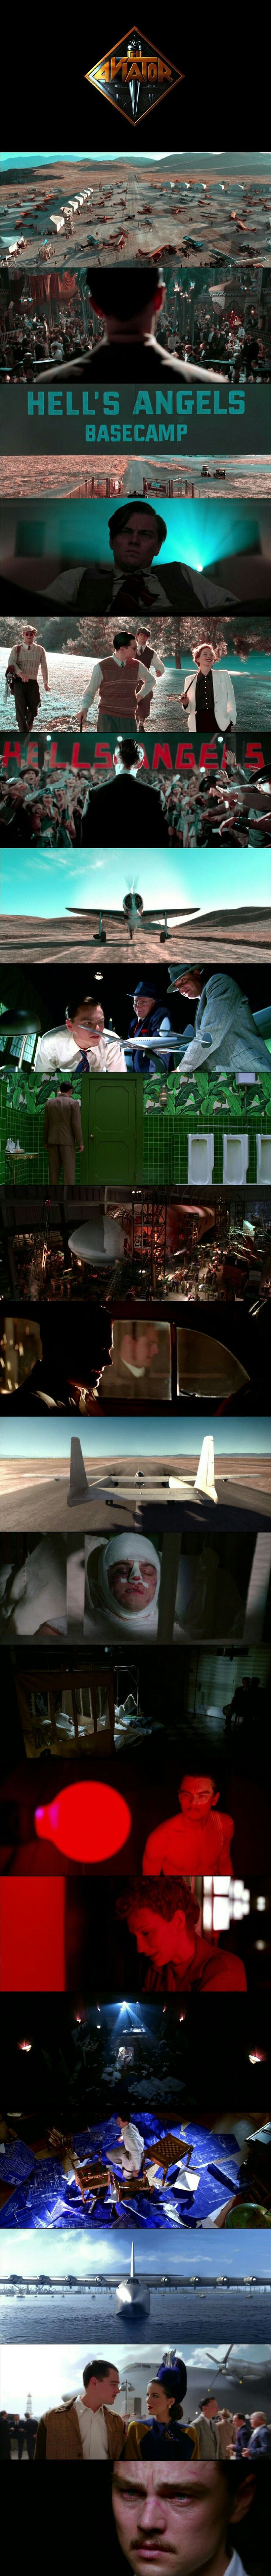 The Aviator(2004) Directed by Martin Scorsese. Cinematography by Robert Richardson. #GreatCinematographyStrategies